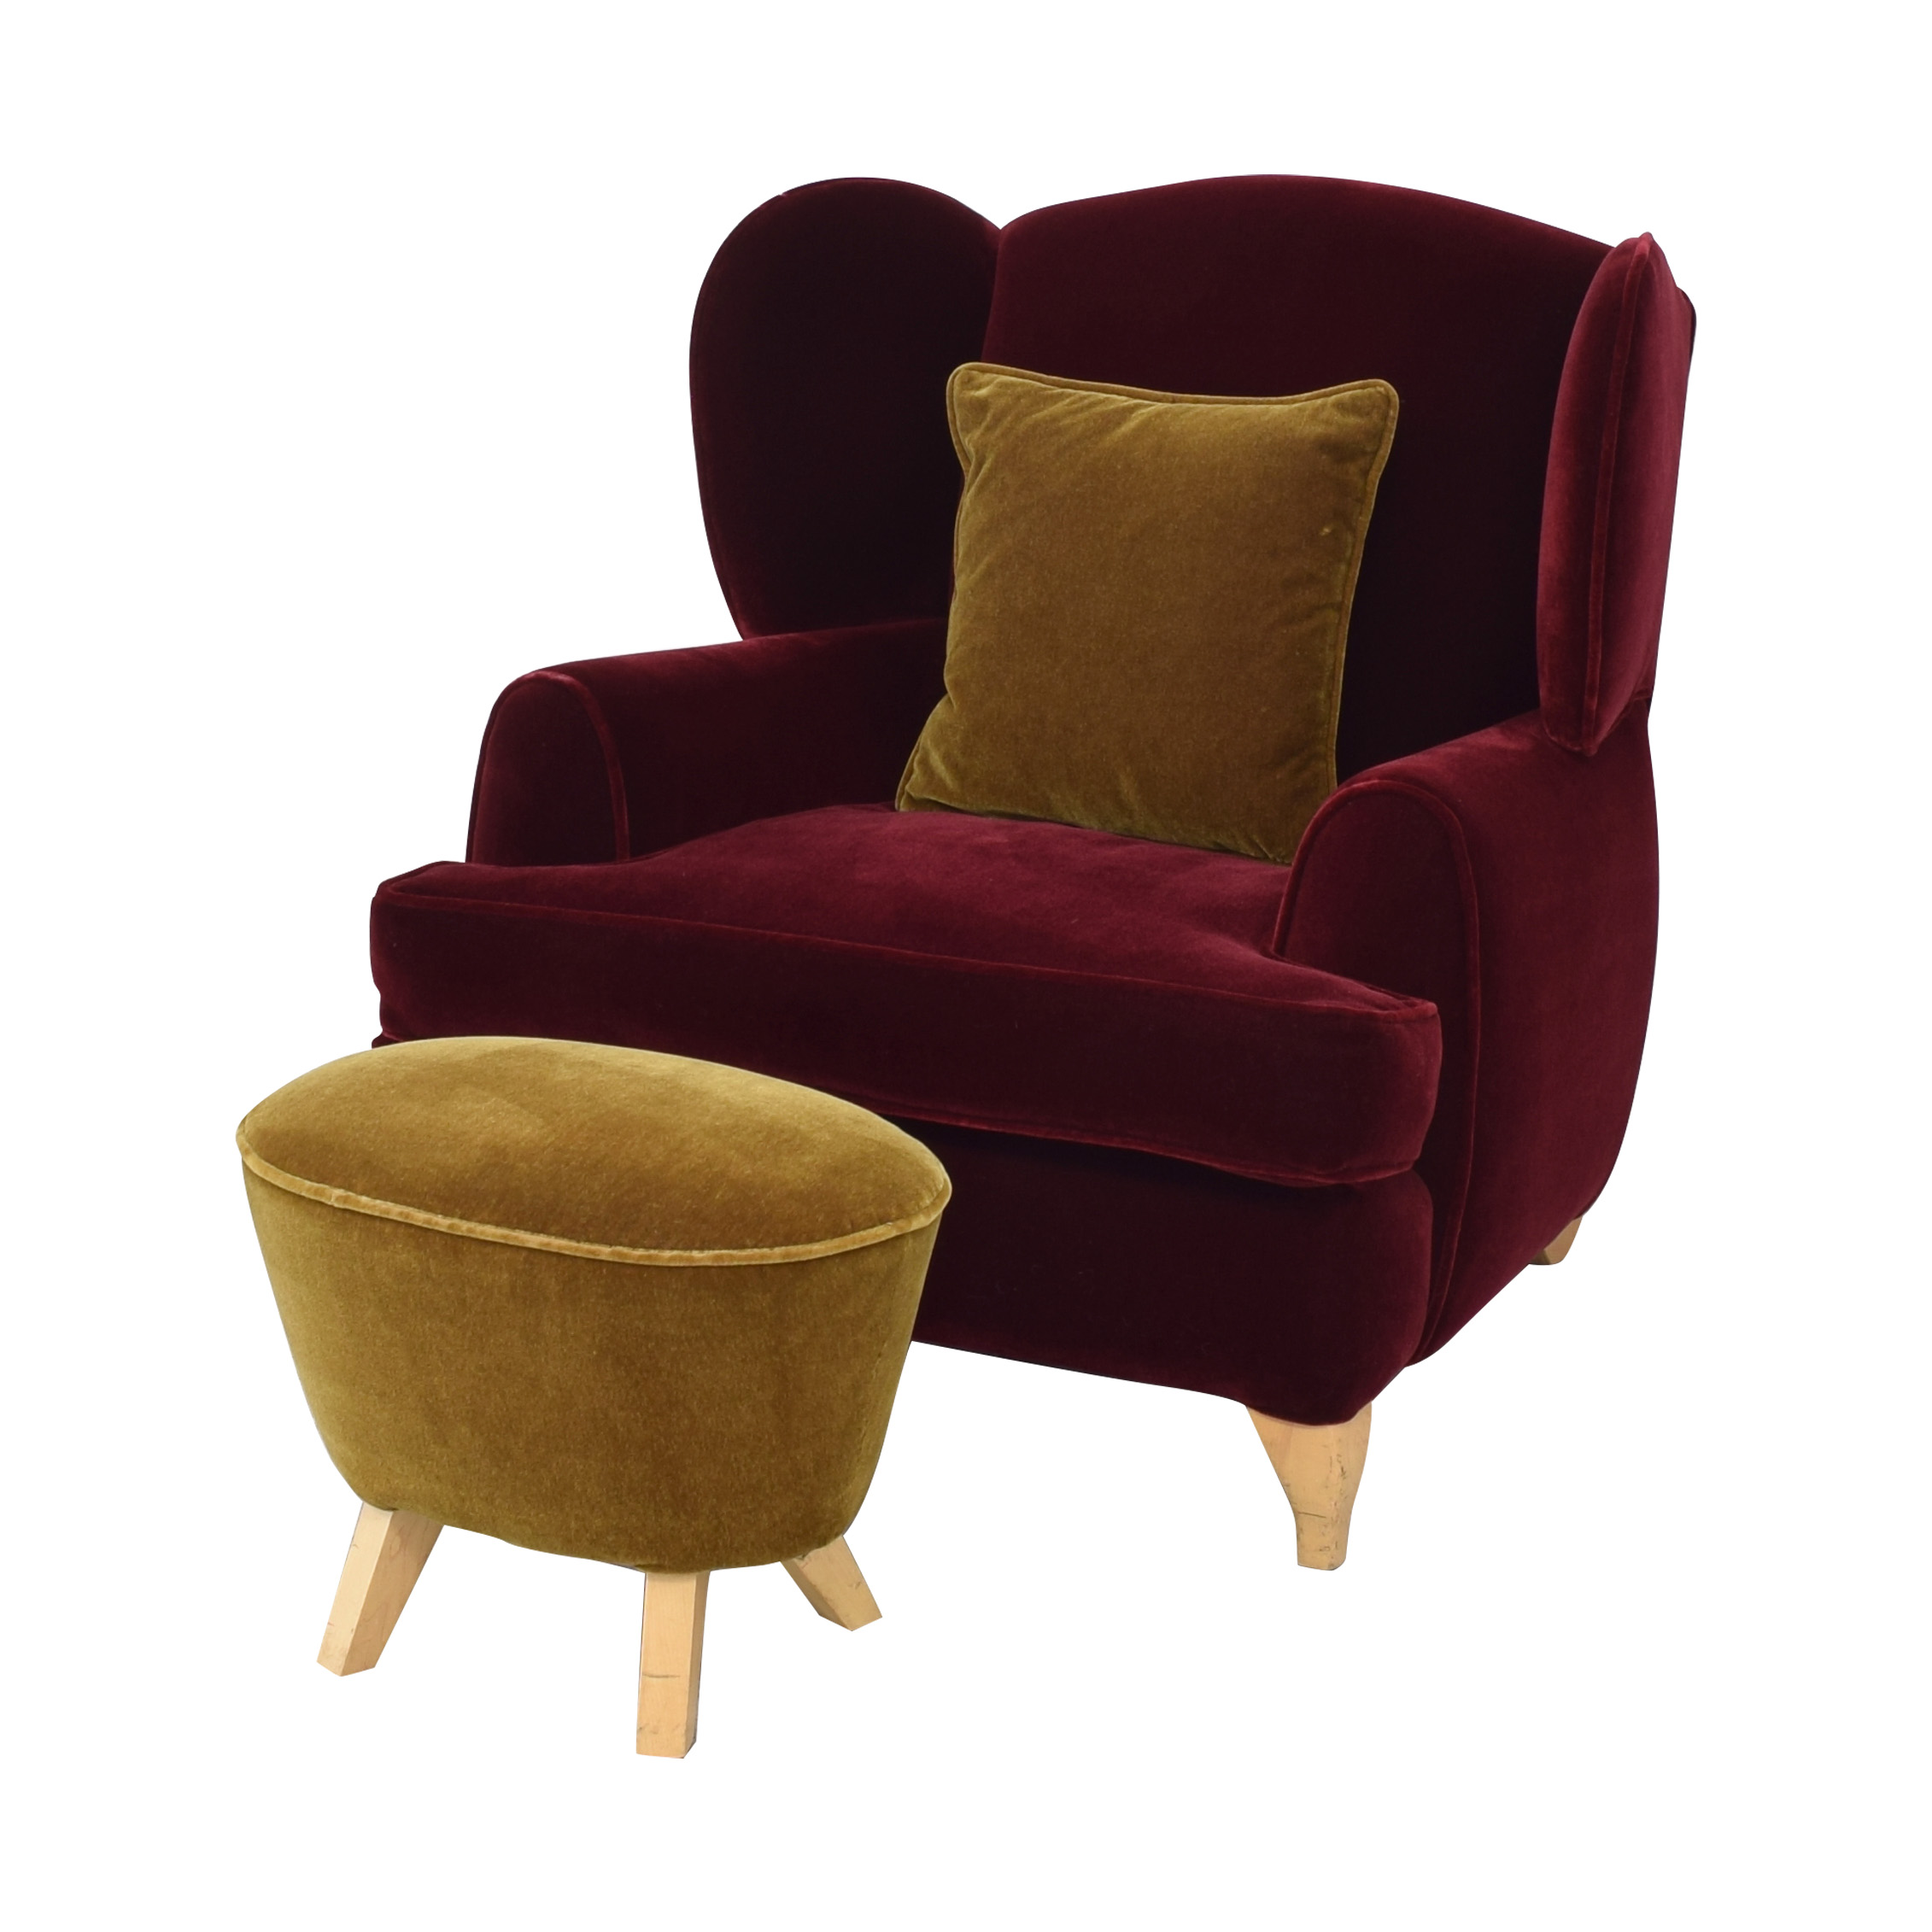 Custom Wingback Chair and Ottoman second hand